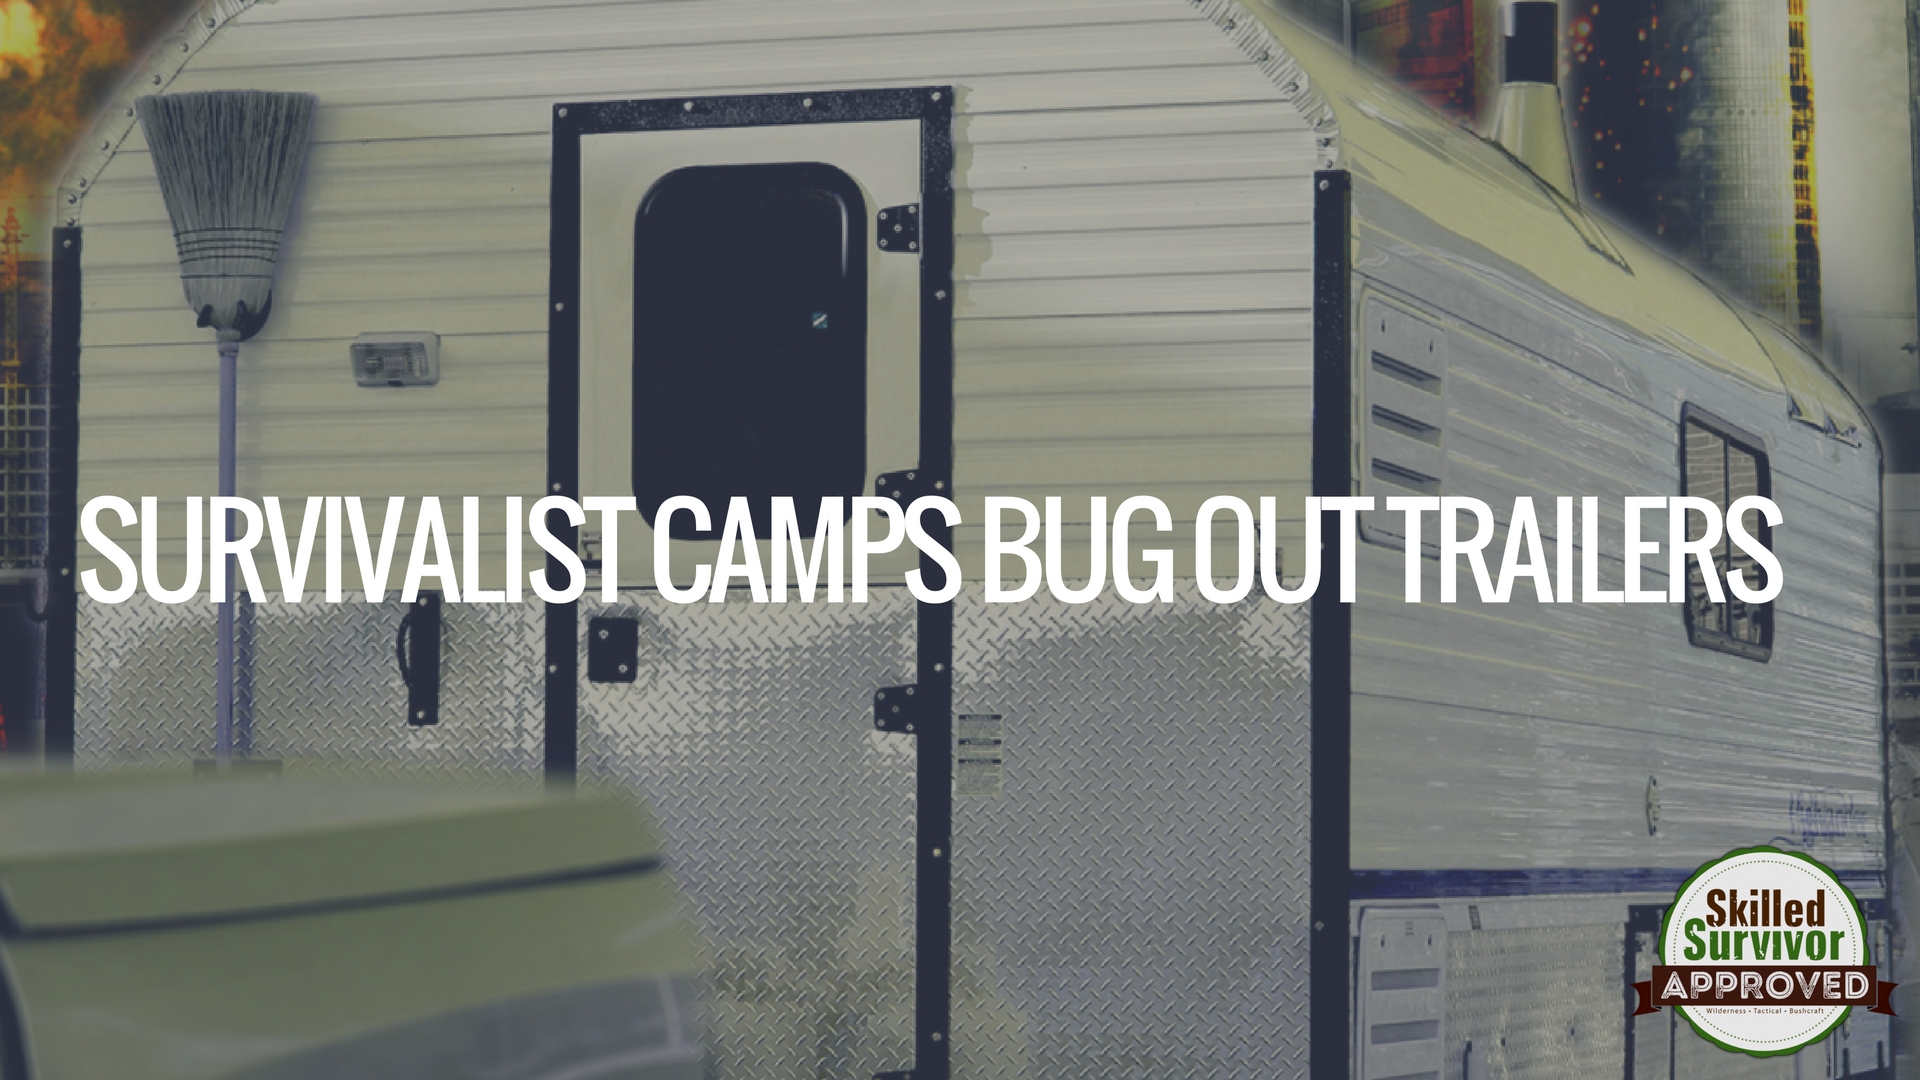 survivalist-camps-bug-out-trailer-gift-idea